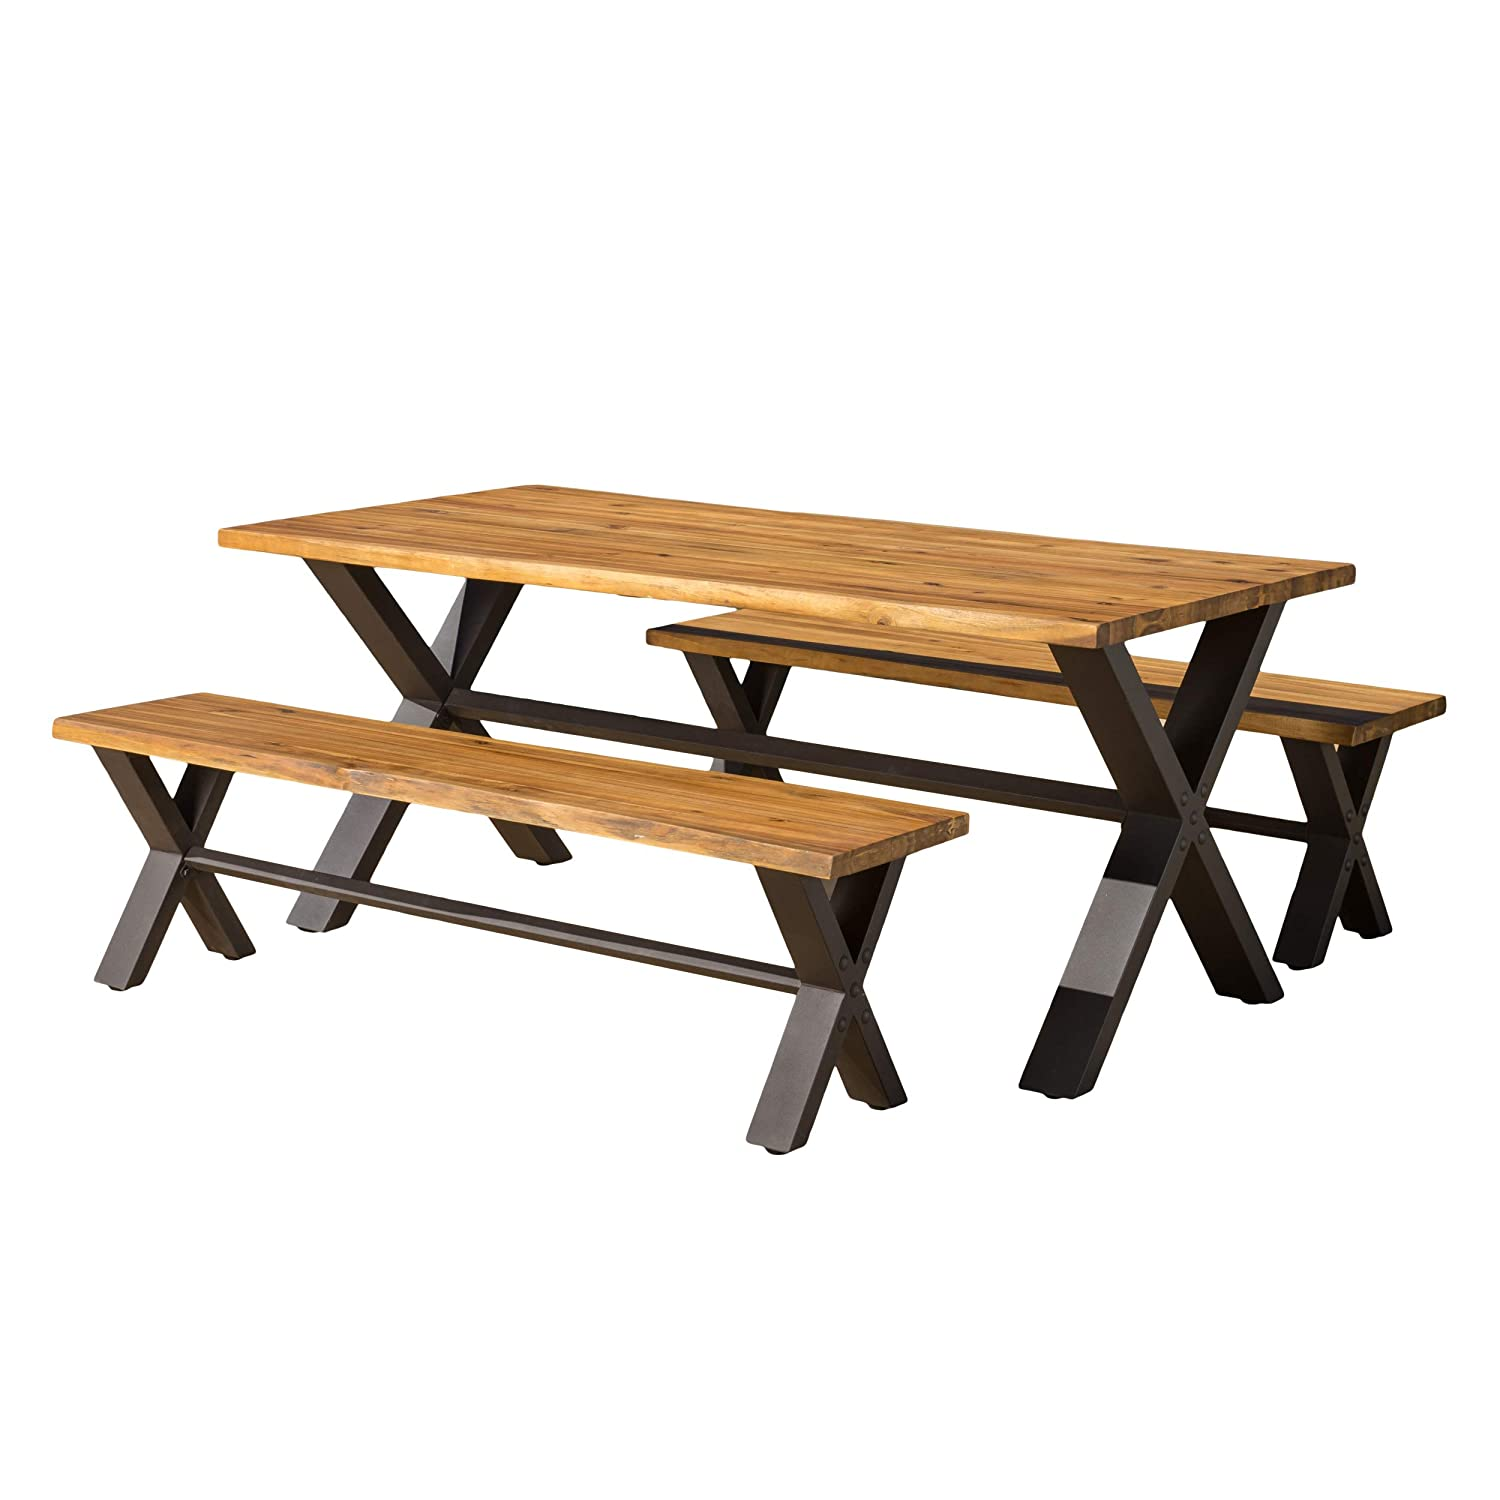 Amazon.com: Great Deal Furniture Laurel | 3 Piece Solid Wood Outdoor Dining  Set | Perfect for Patio | with Teak Finish: Garden & Outdoor - Amazon.com: Great Deal Furniture Laurel 3 Piece Solid Wood Outdoor